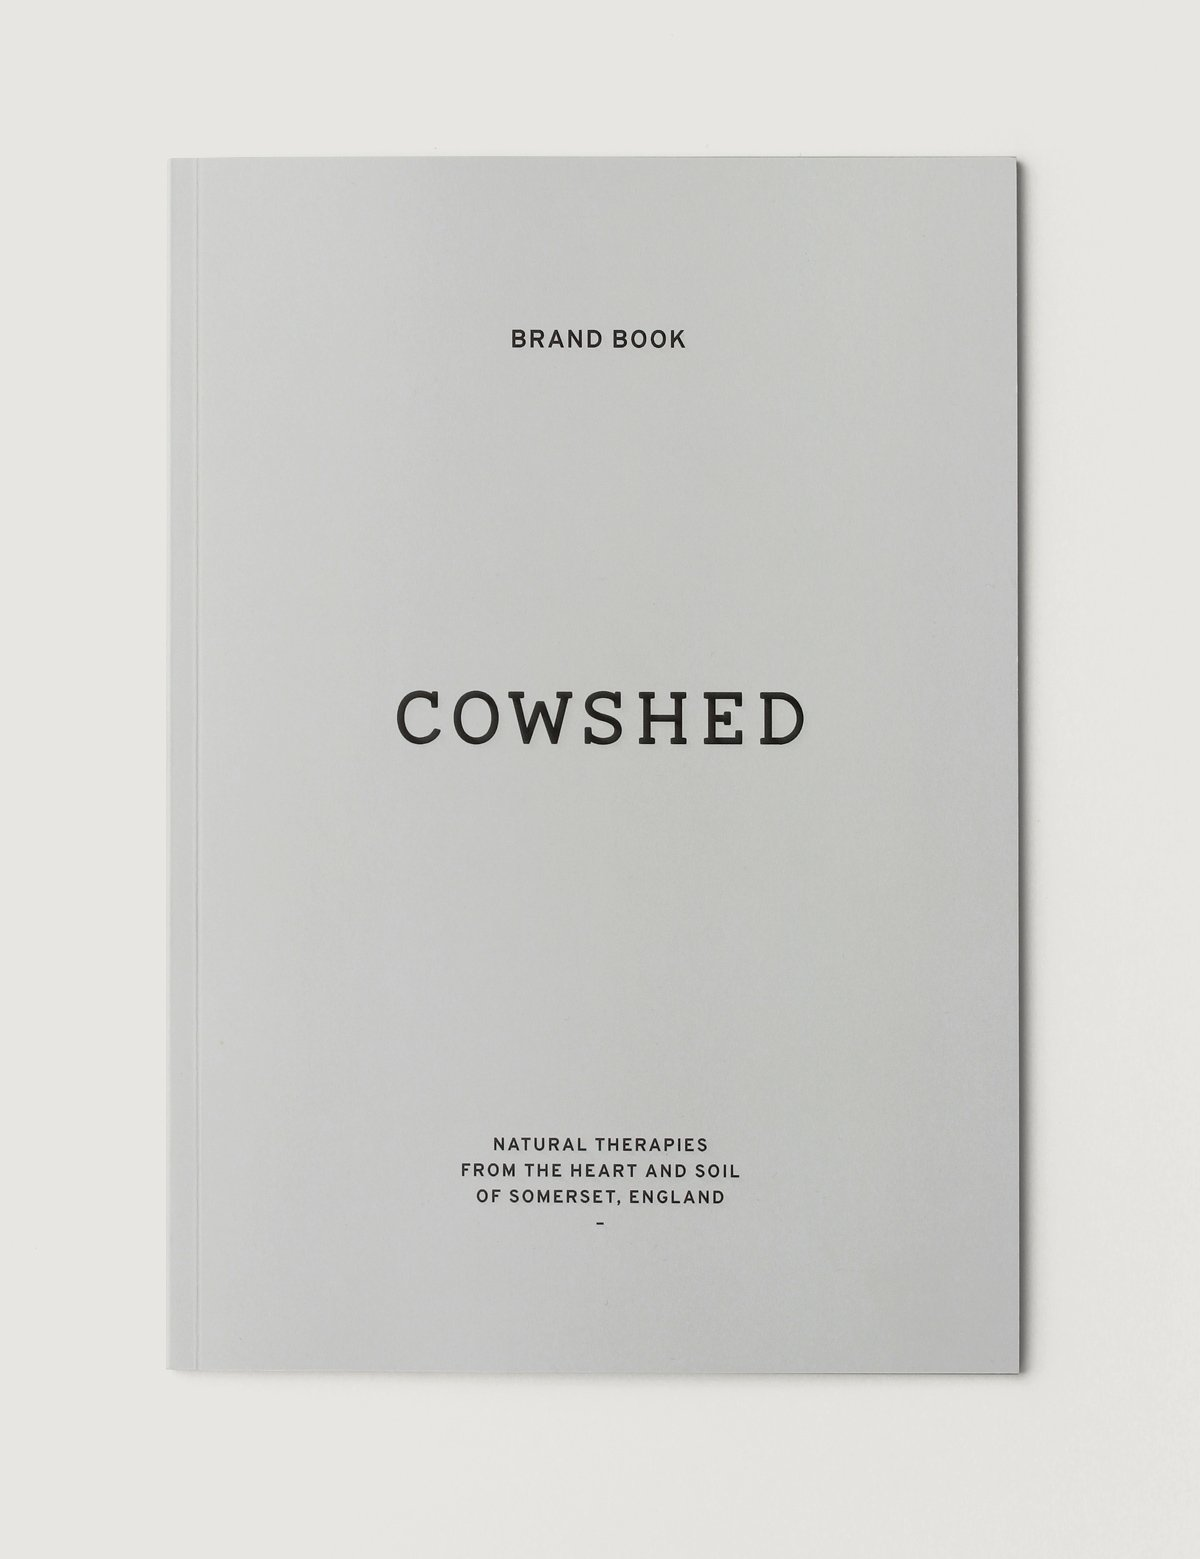 Cowshed Brand Book by Spinach Brand Agency